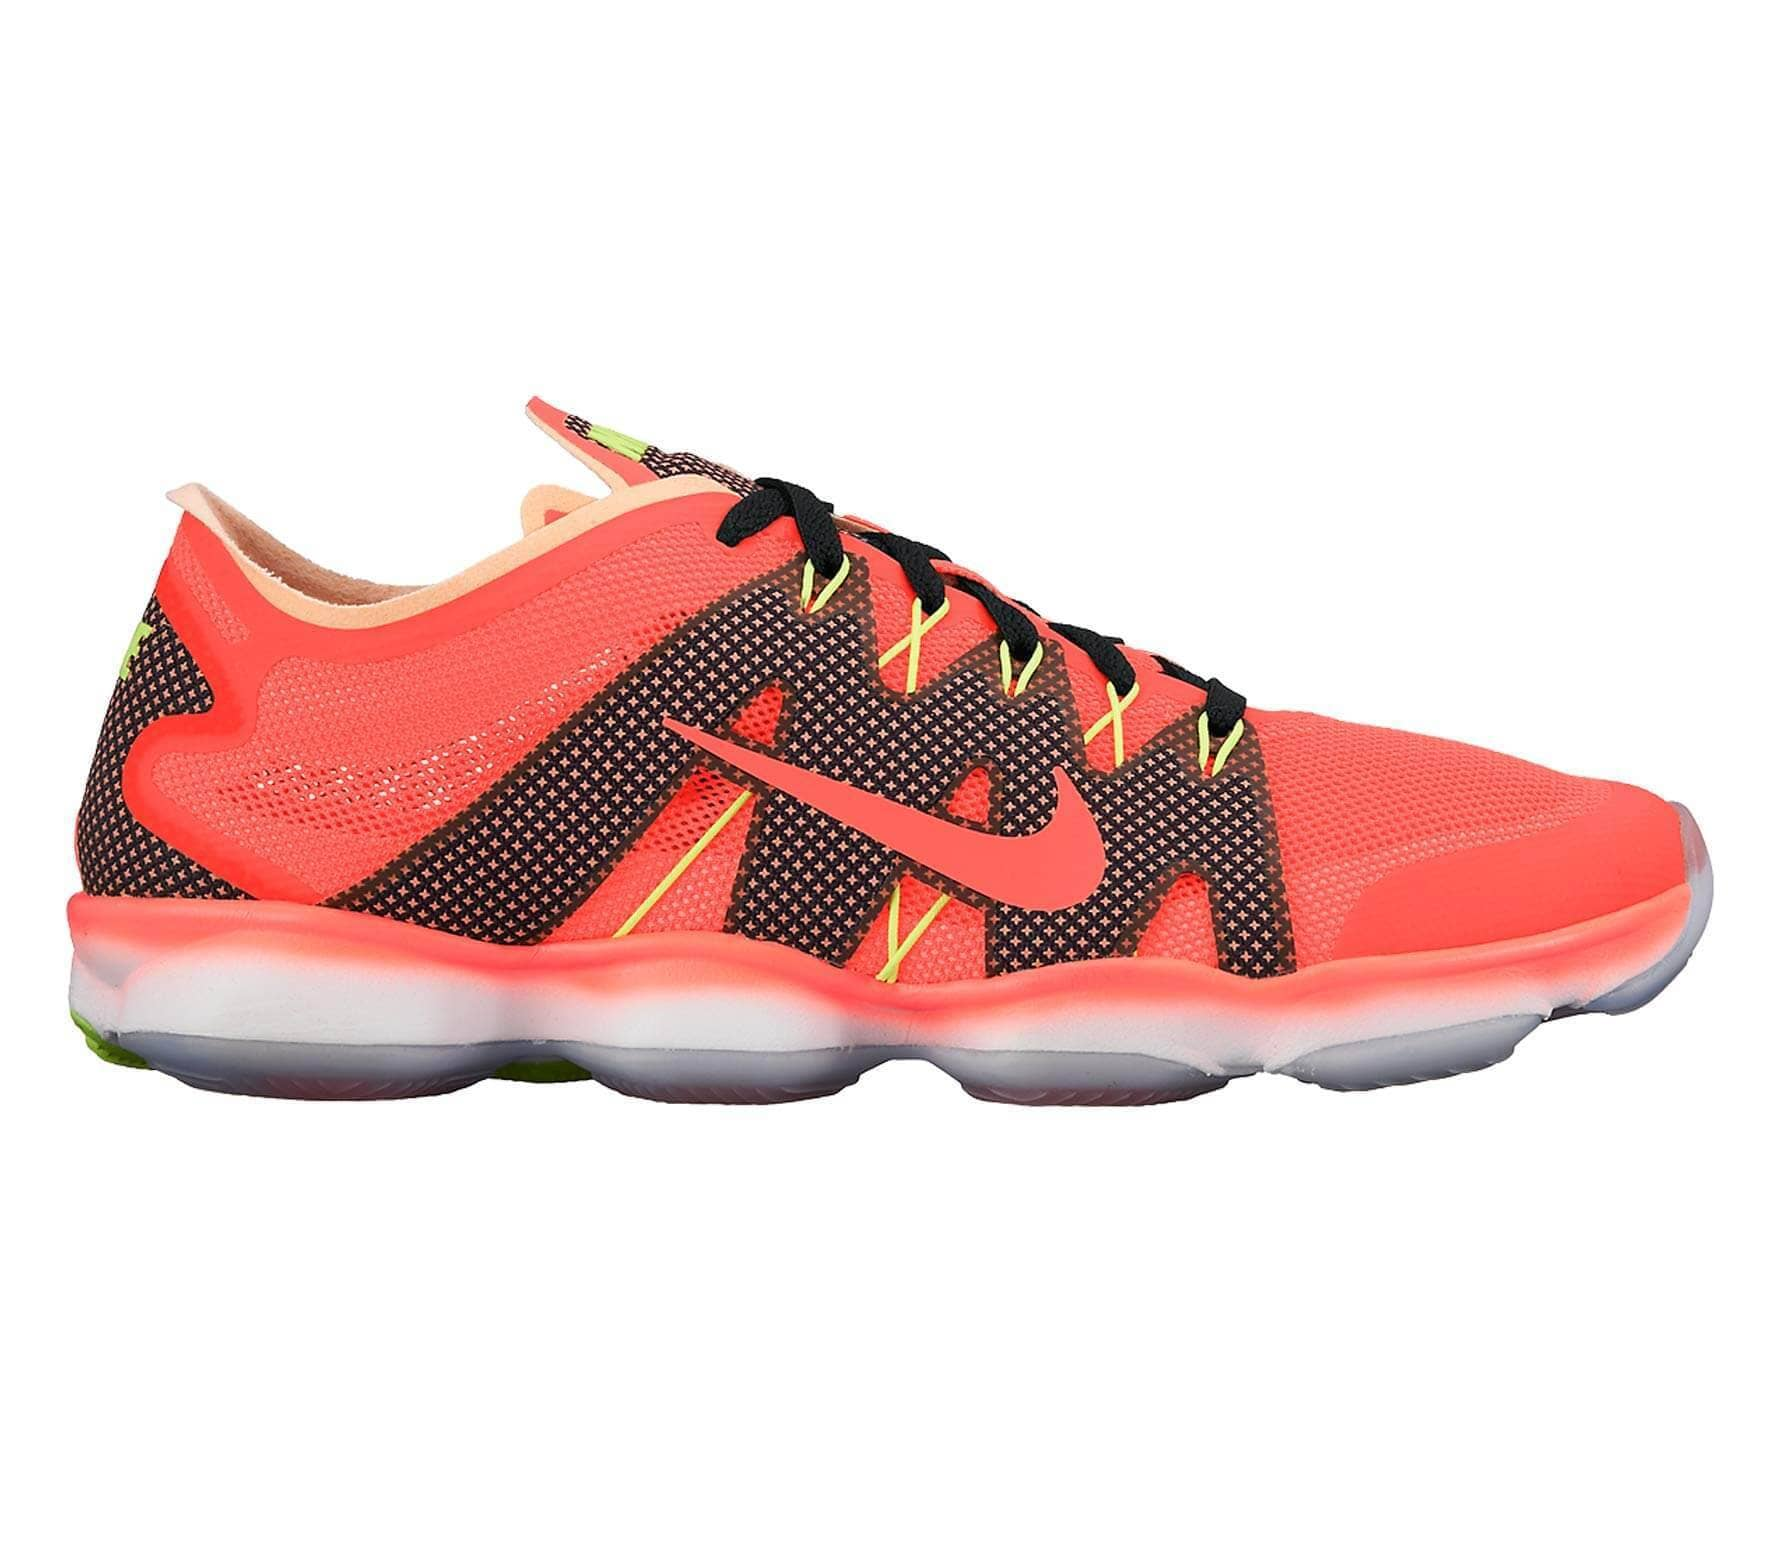 72f3de03d609 Nike - Air Zoom Fit Agility 2 women s training shoes (orange brown ...